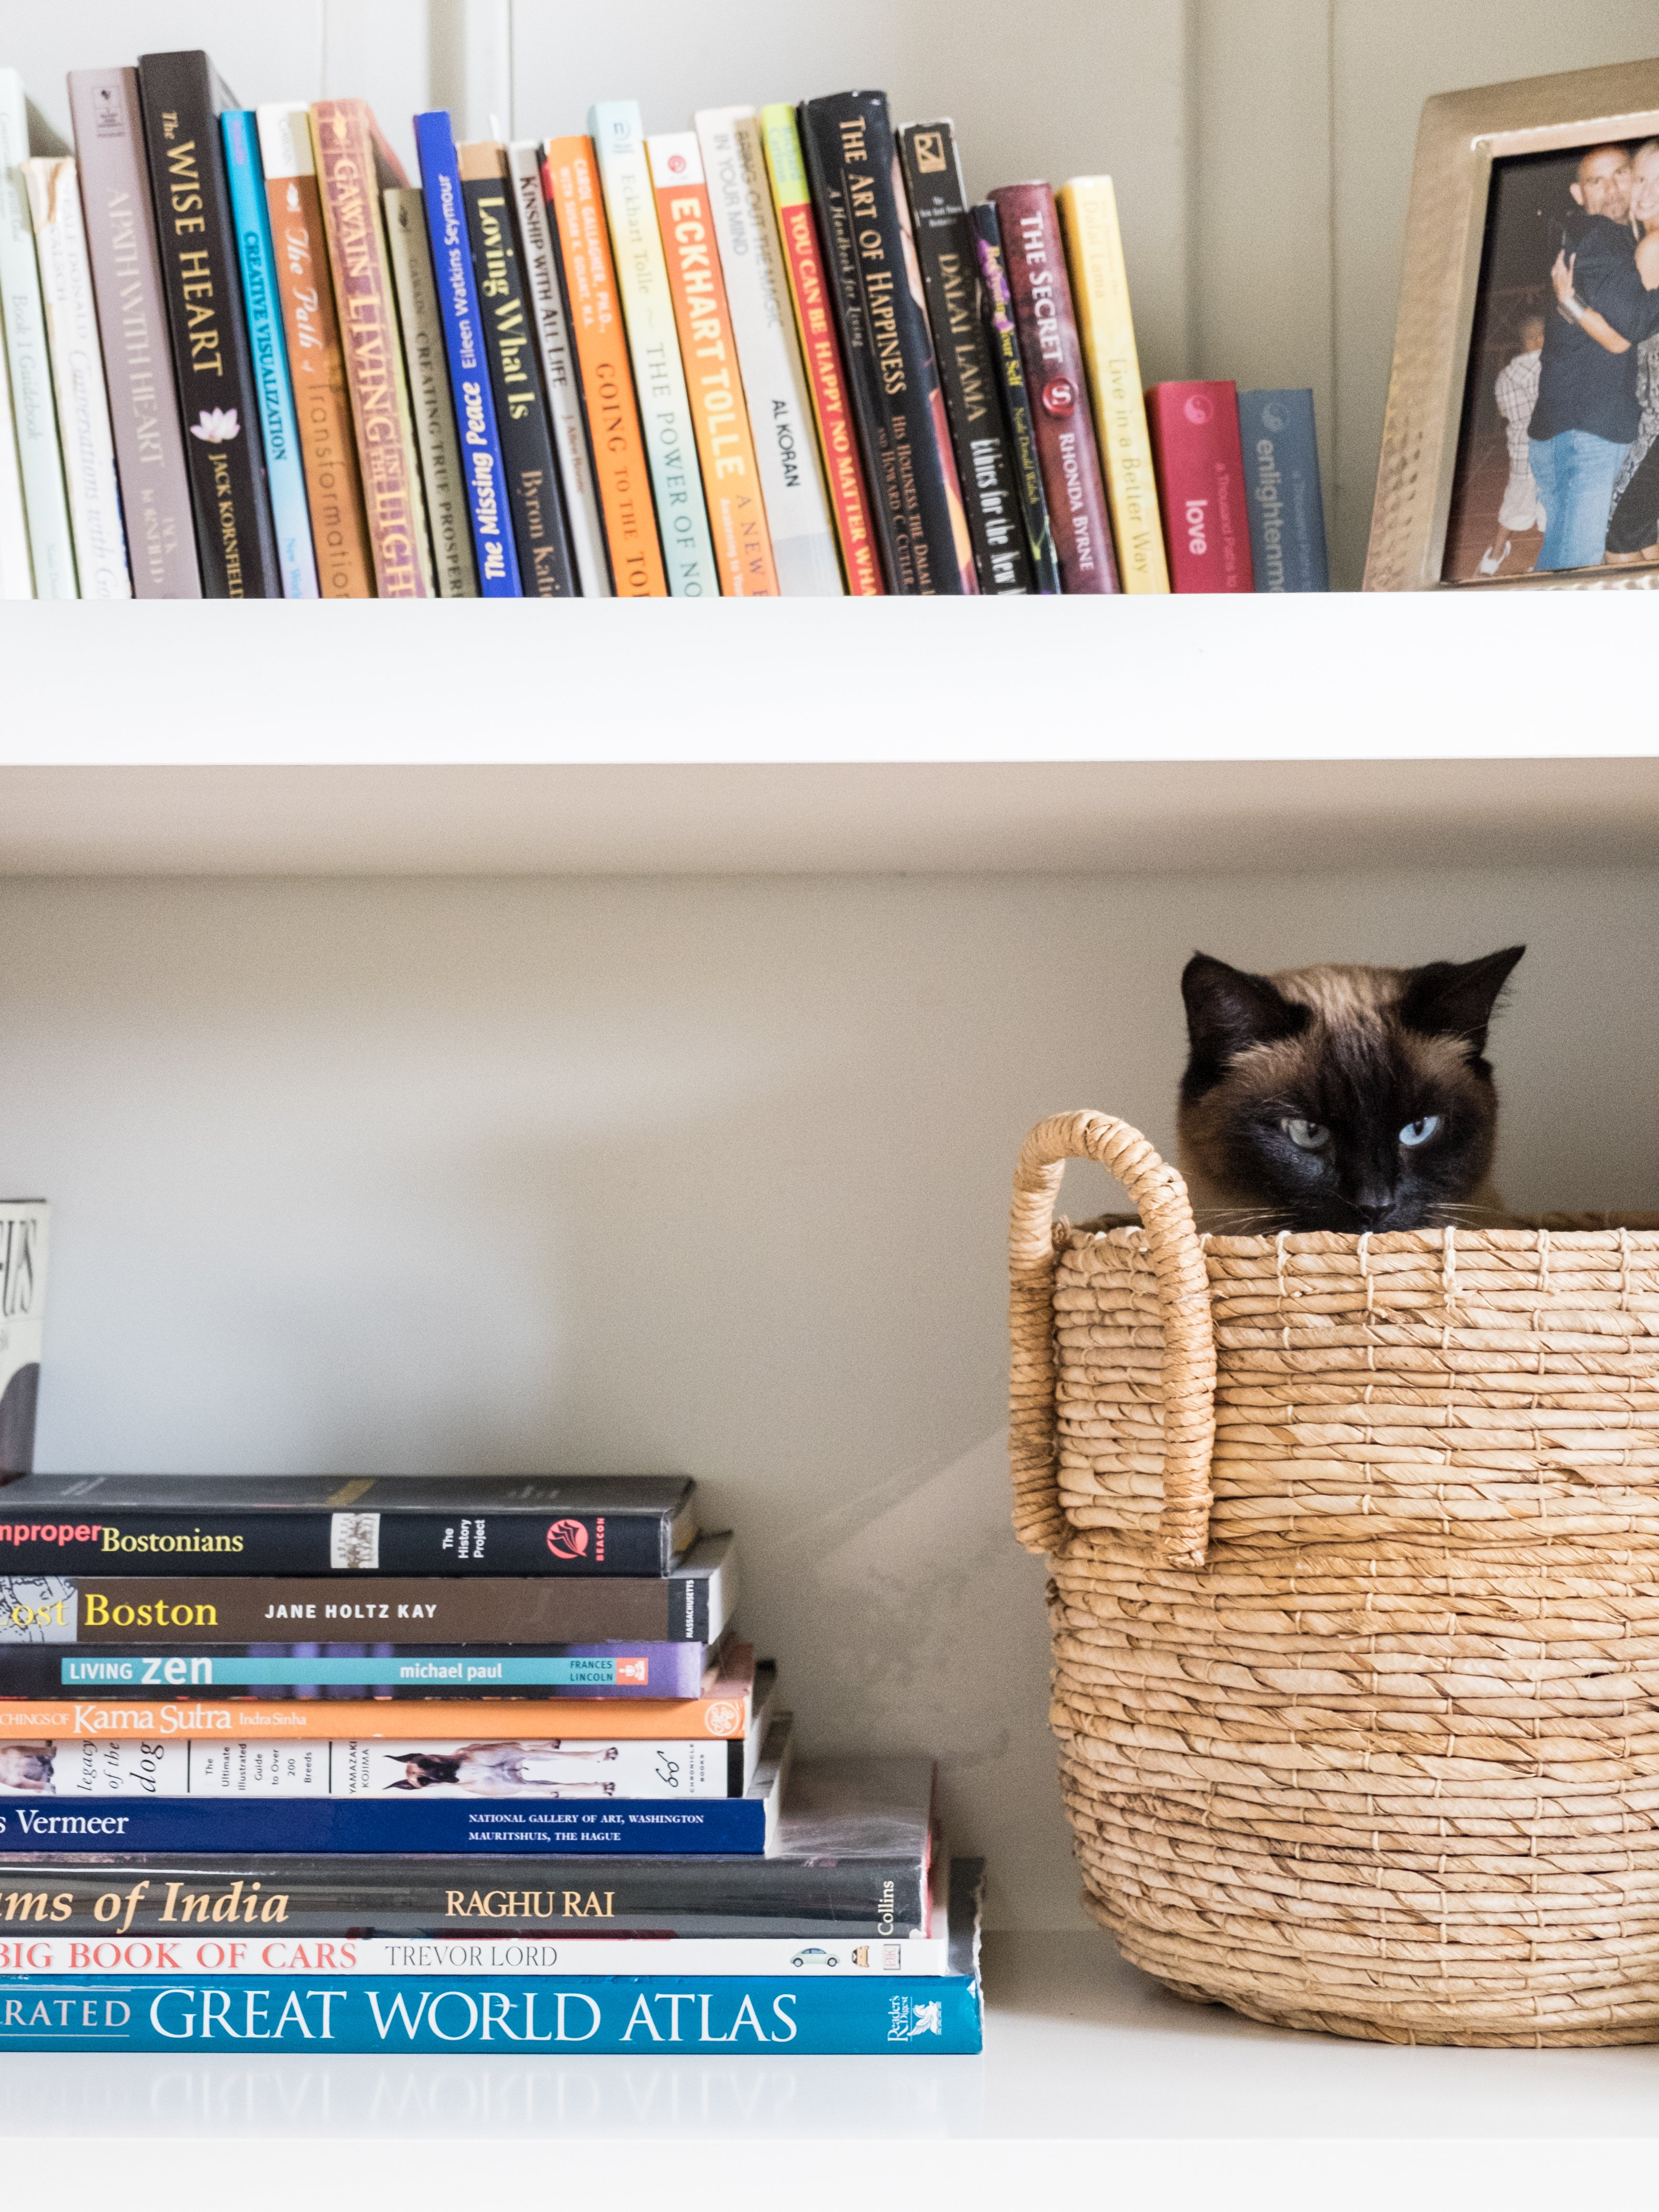 How To Make A Small Apartment More Fun For A Cat Apartment Therapy